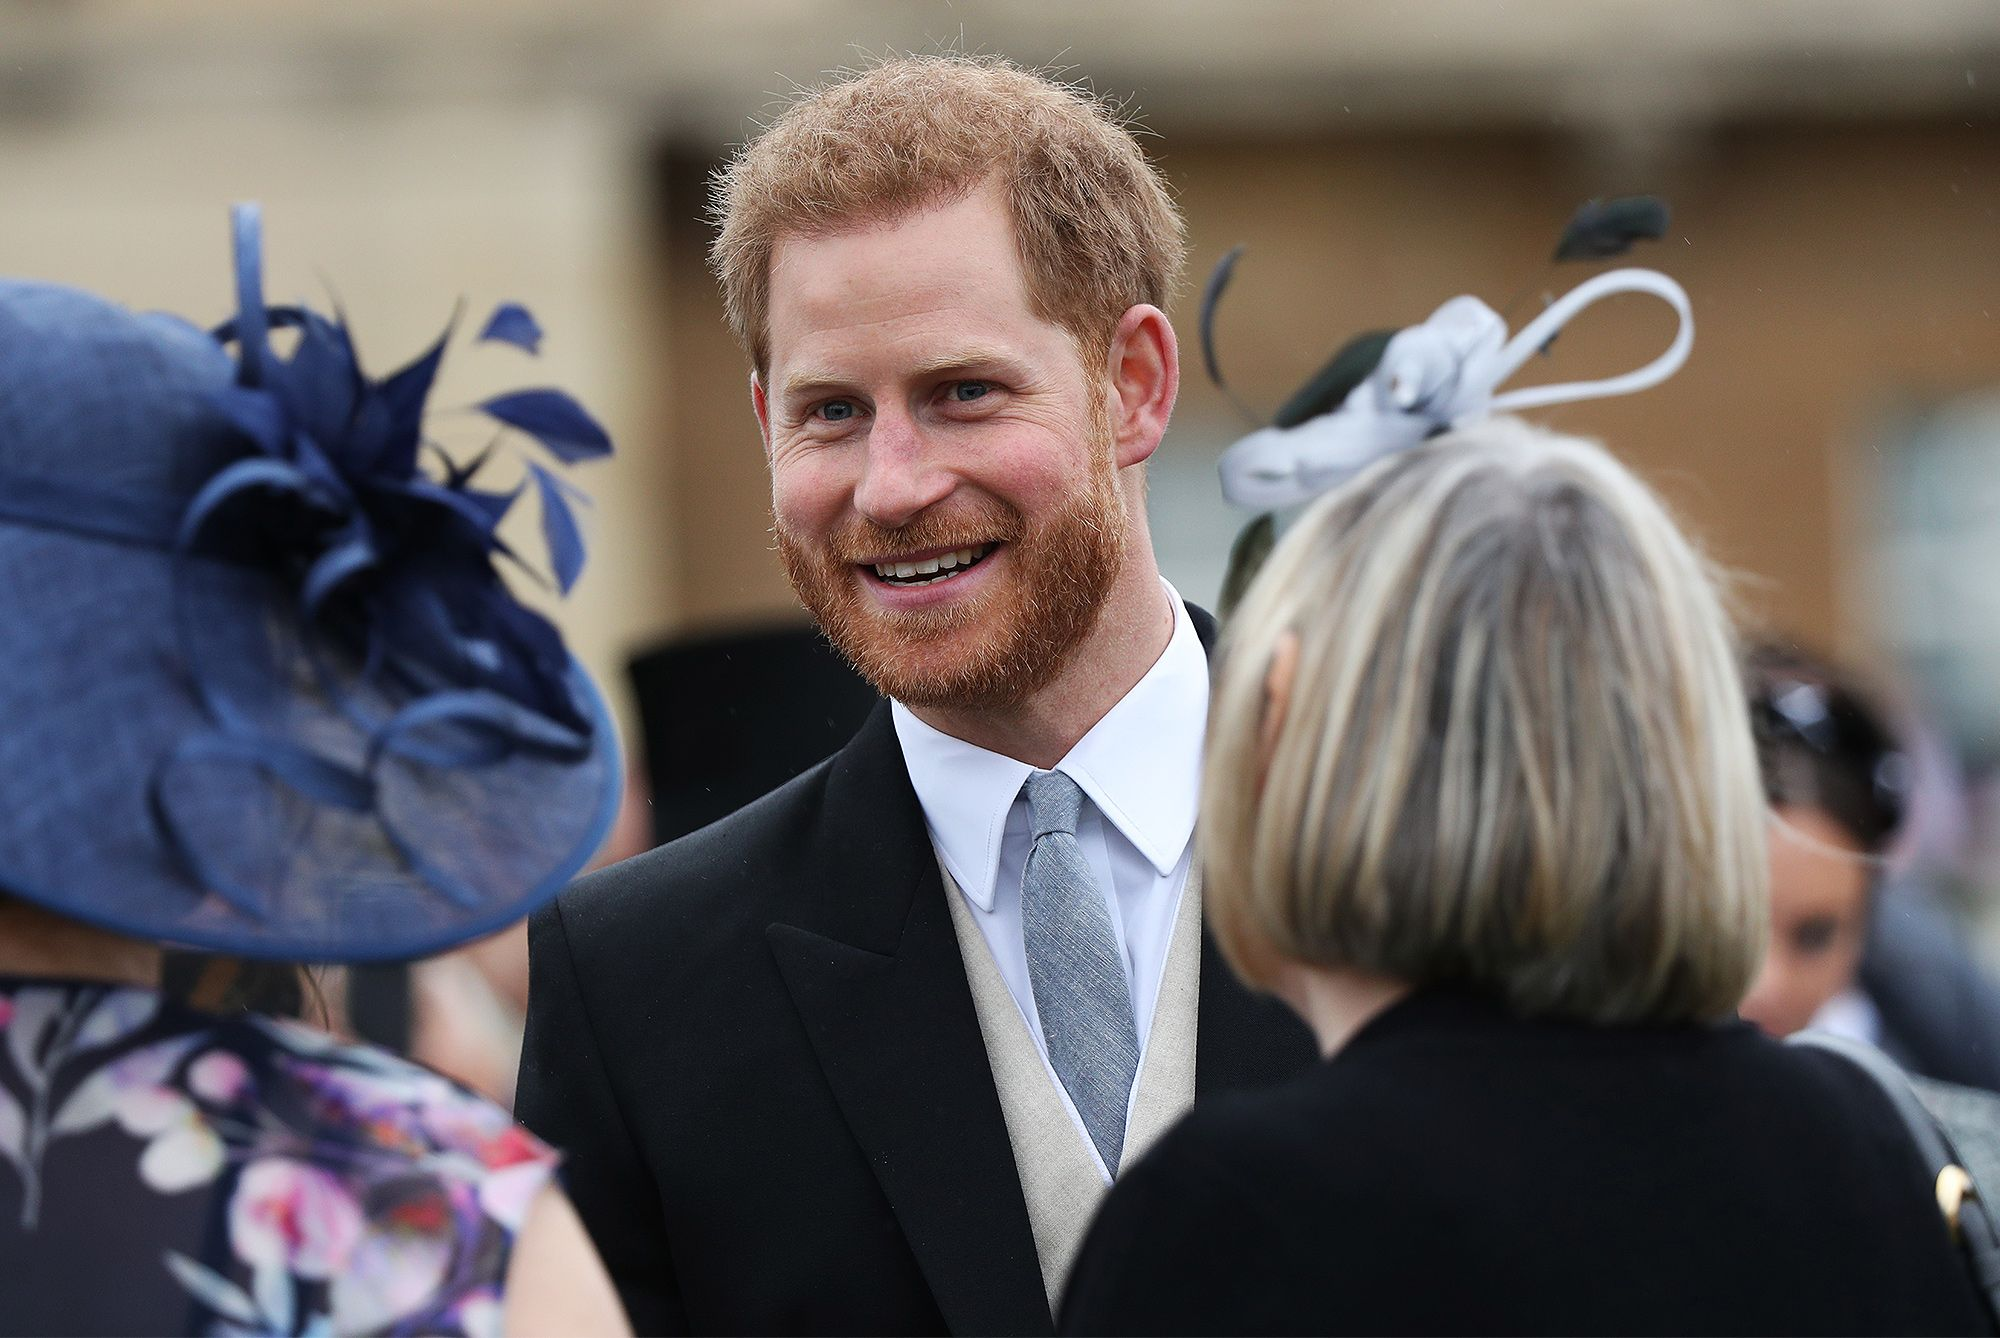 Prince Harry S Snuck In A Sweet Nod To Wife Meghan Markle At Buckingham Palace Garden Party Prince Harry Buckingham Palace Garden Party Buckingham Palace Gardens